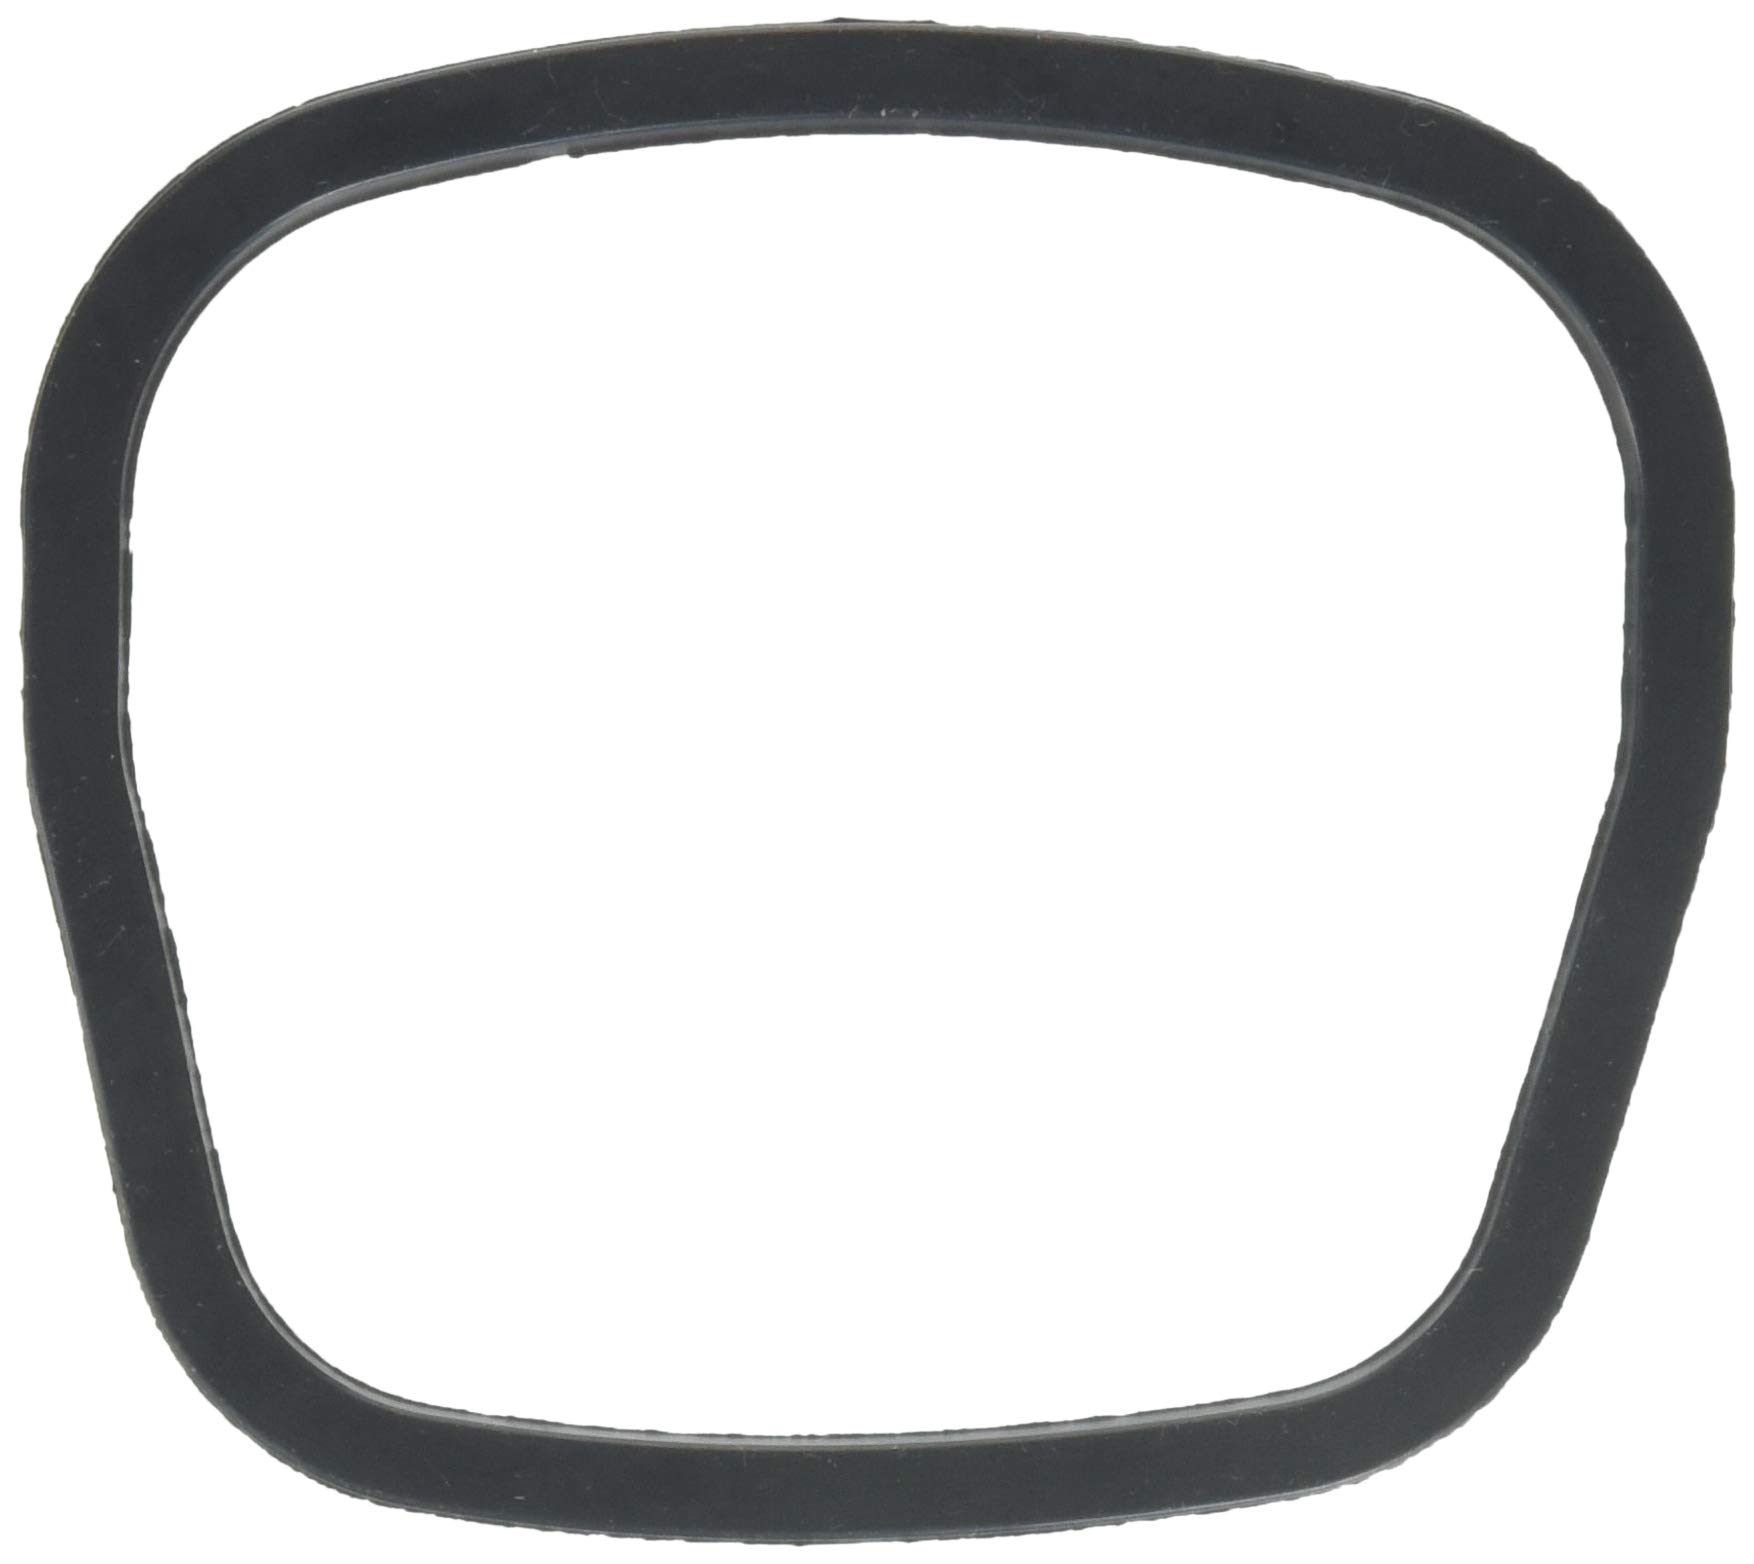 Toyota 17848-35010 Air Cleaner Mounting Gasket by Toyota